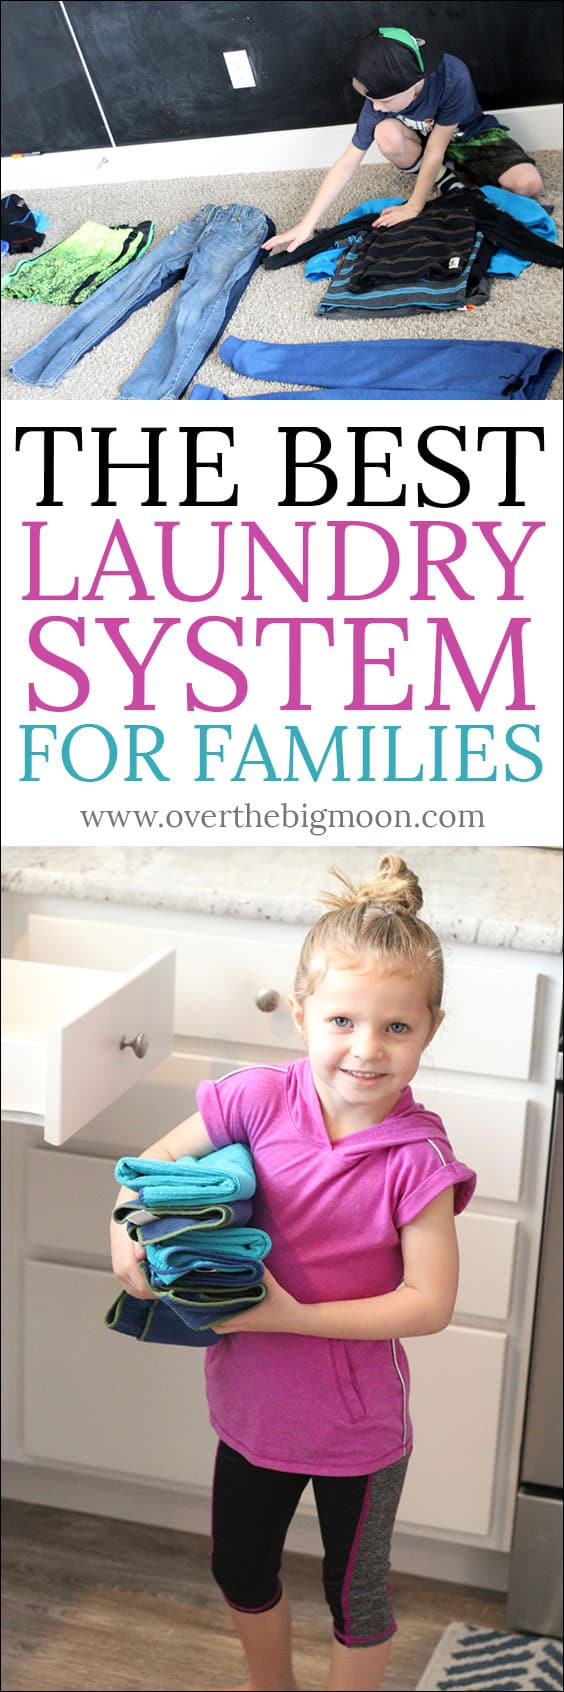 It's time to get the whole family involved and helping with laundry! Come see the Best Laundry System for Families! From overthebigmoon.com! #laundry #chores